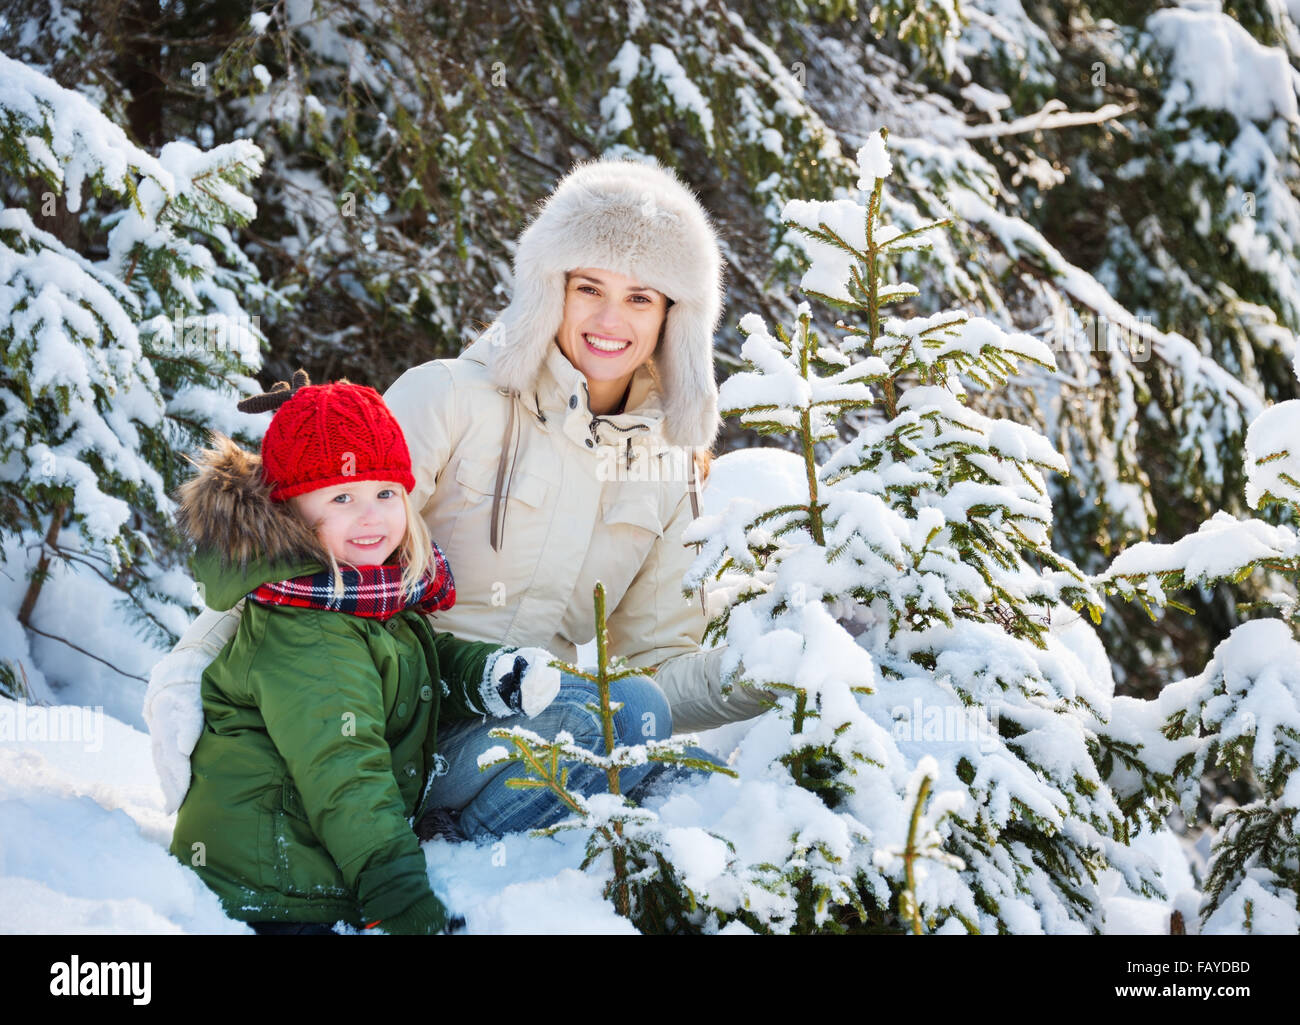 Winter outdoors can be fairytale-maker for children or even adults. Happy mother and child outdoors among snowy - Stock Image